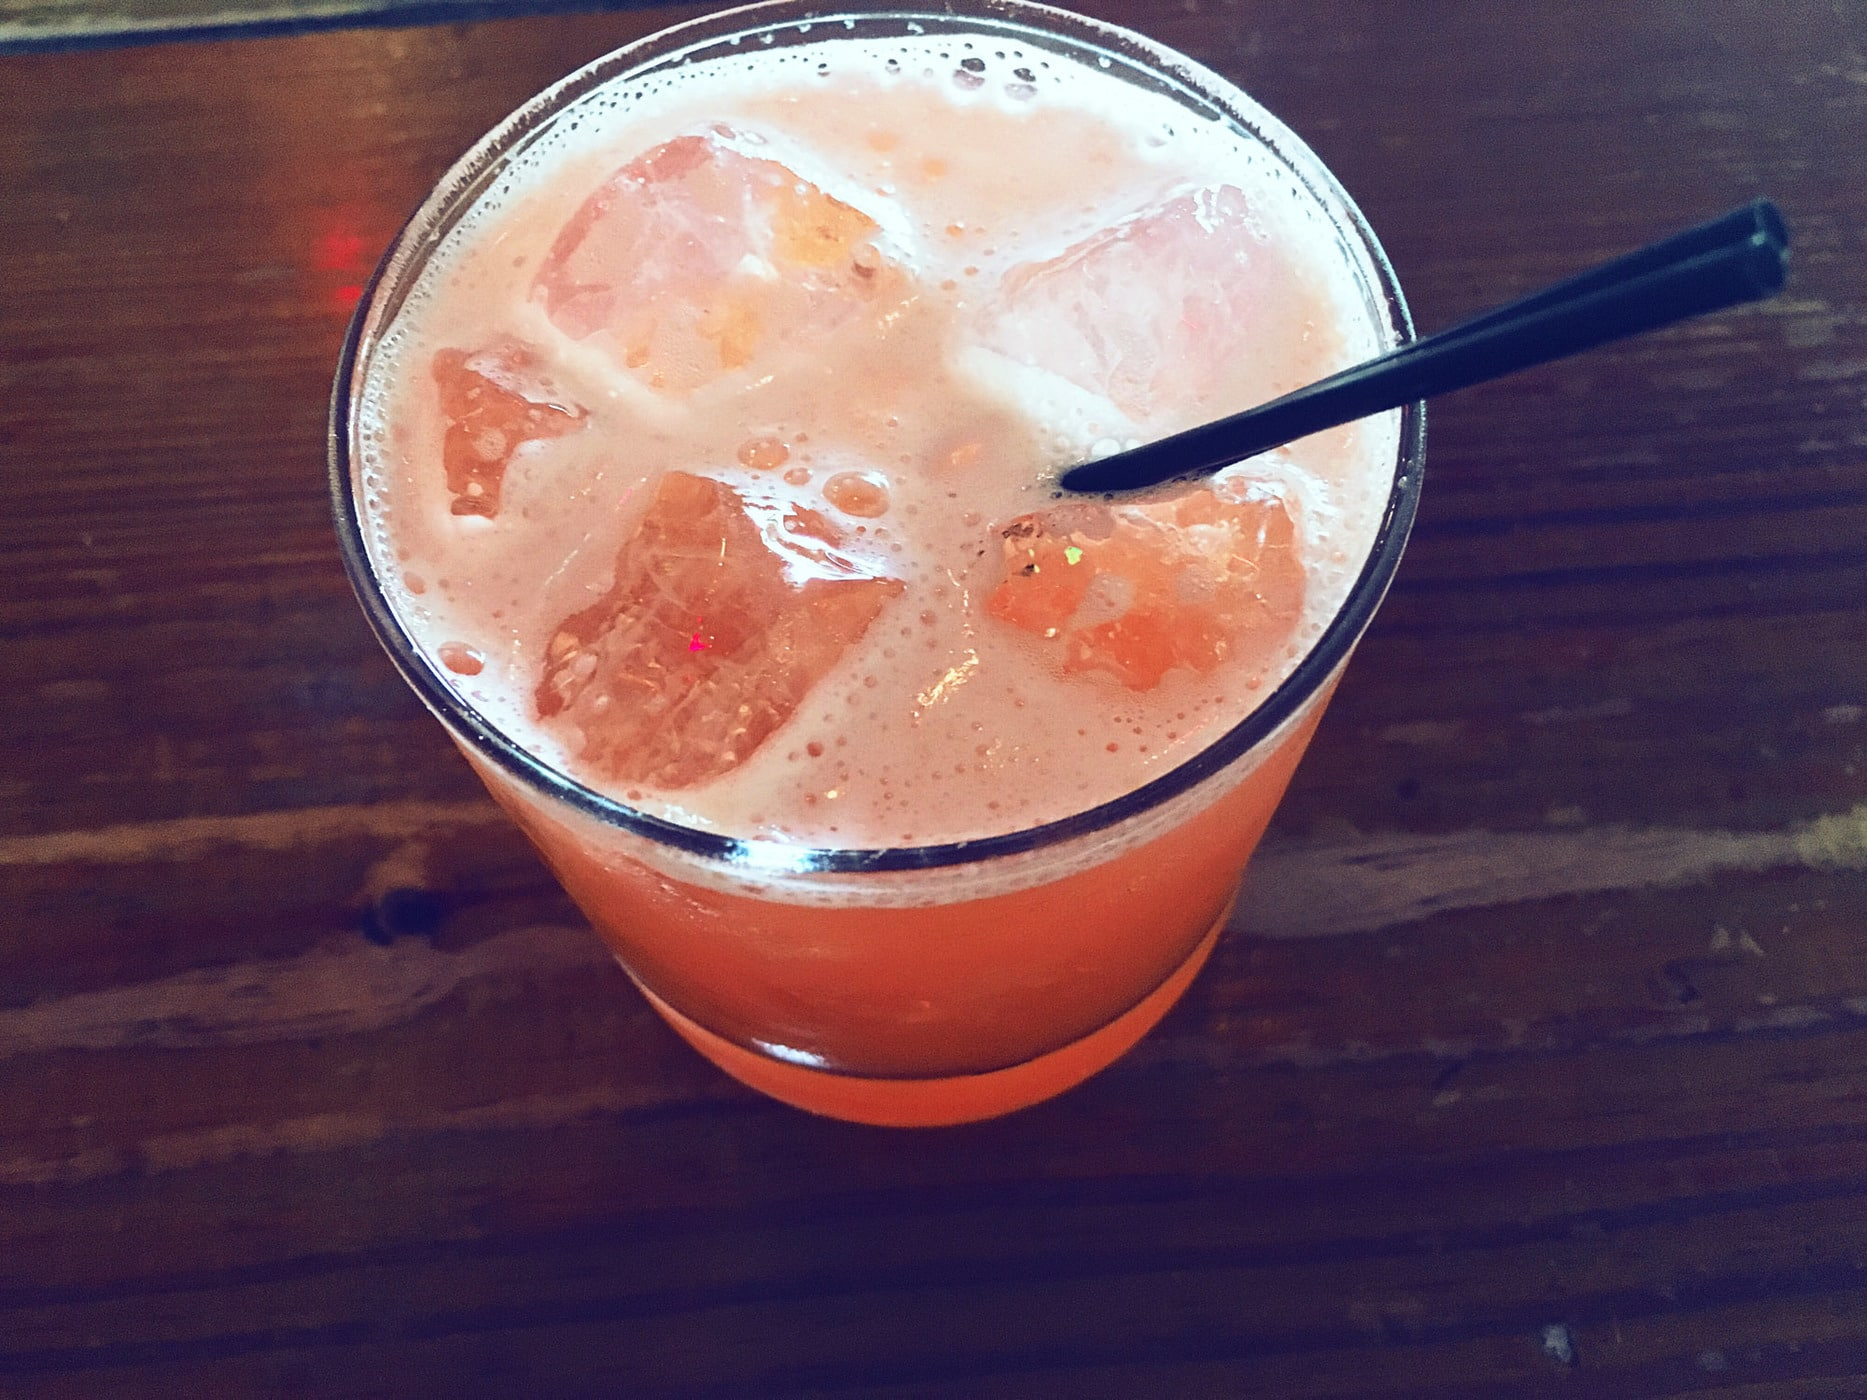 Pig Pen cocktail (strawberry infused Pepe Z Blanco, Aperol, lime, syrup) at Salty Sow in Austin, Texas.